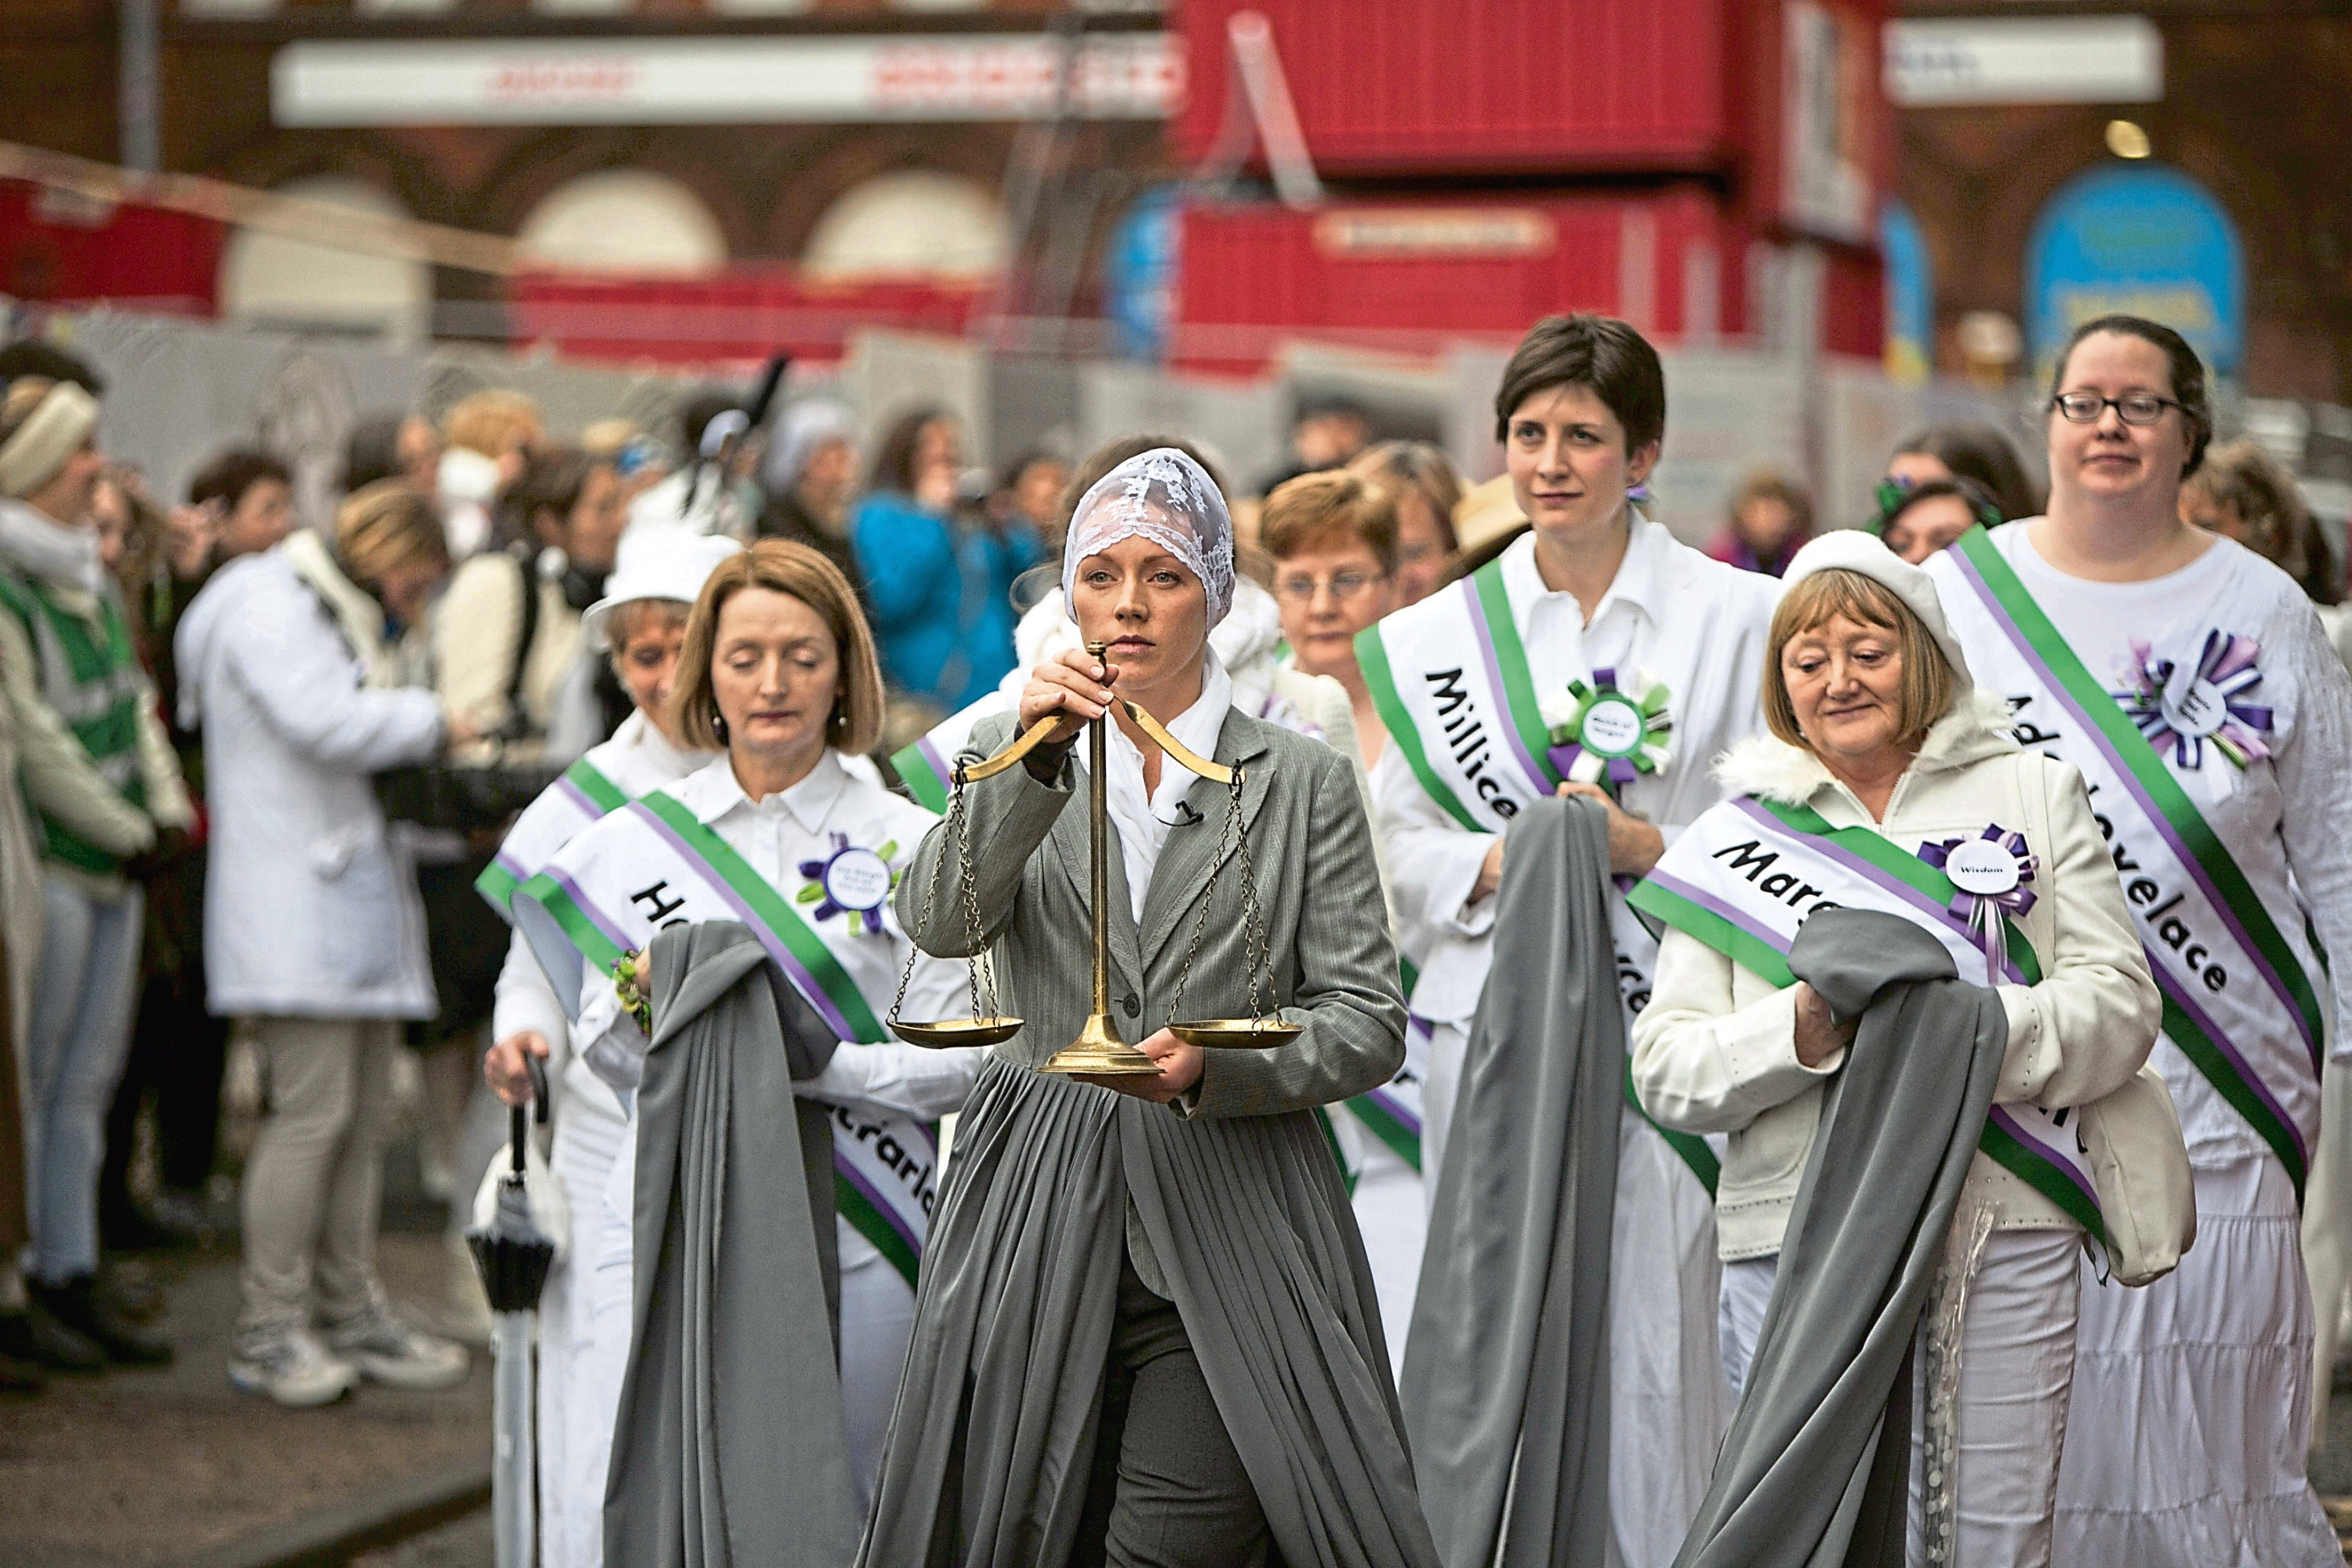 A scene from March Of The Women. The film, celebrating women past and present, will be screened in the city.